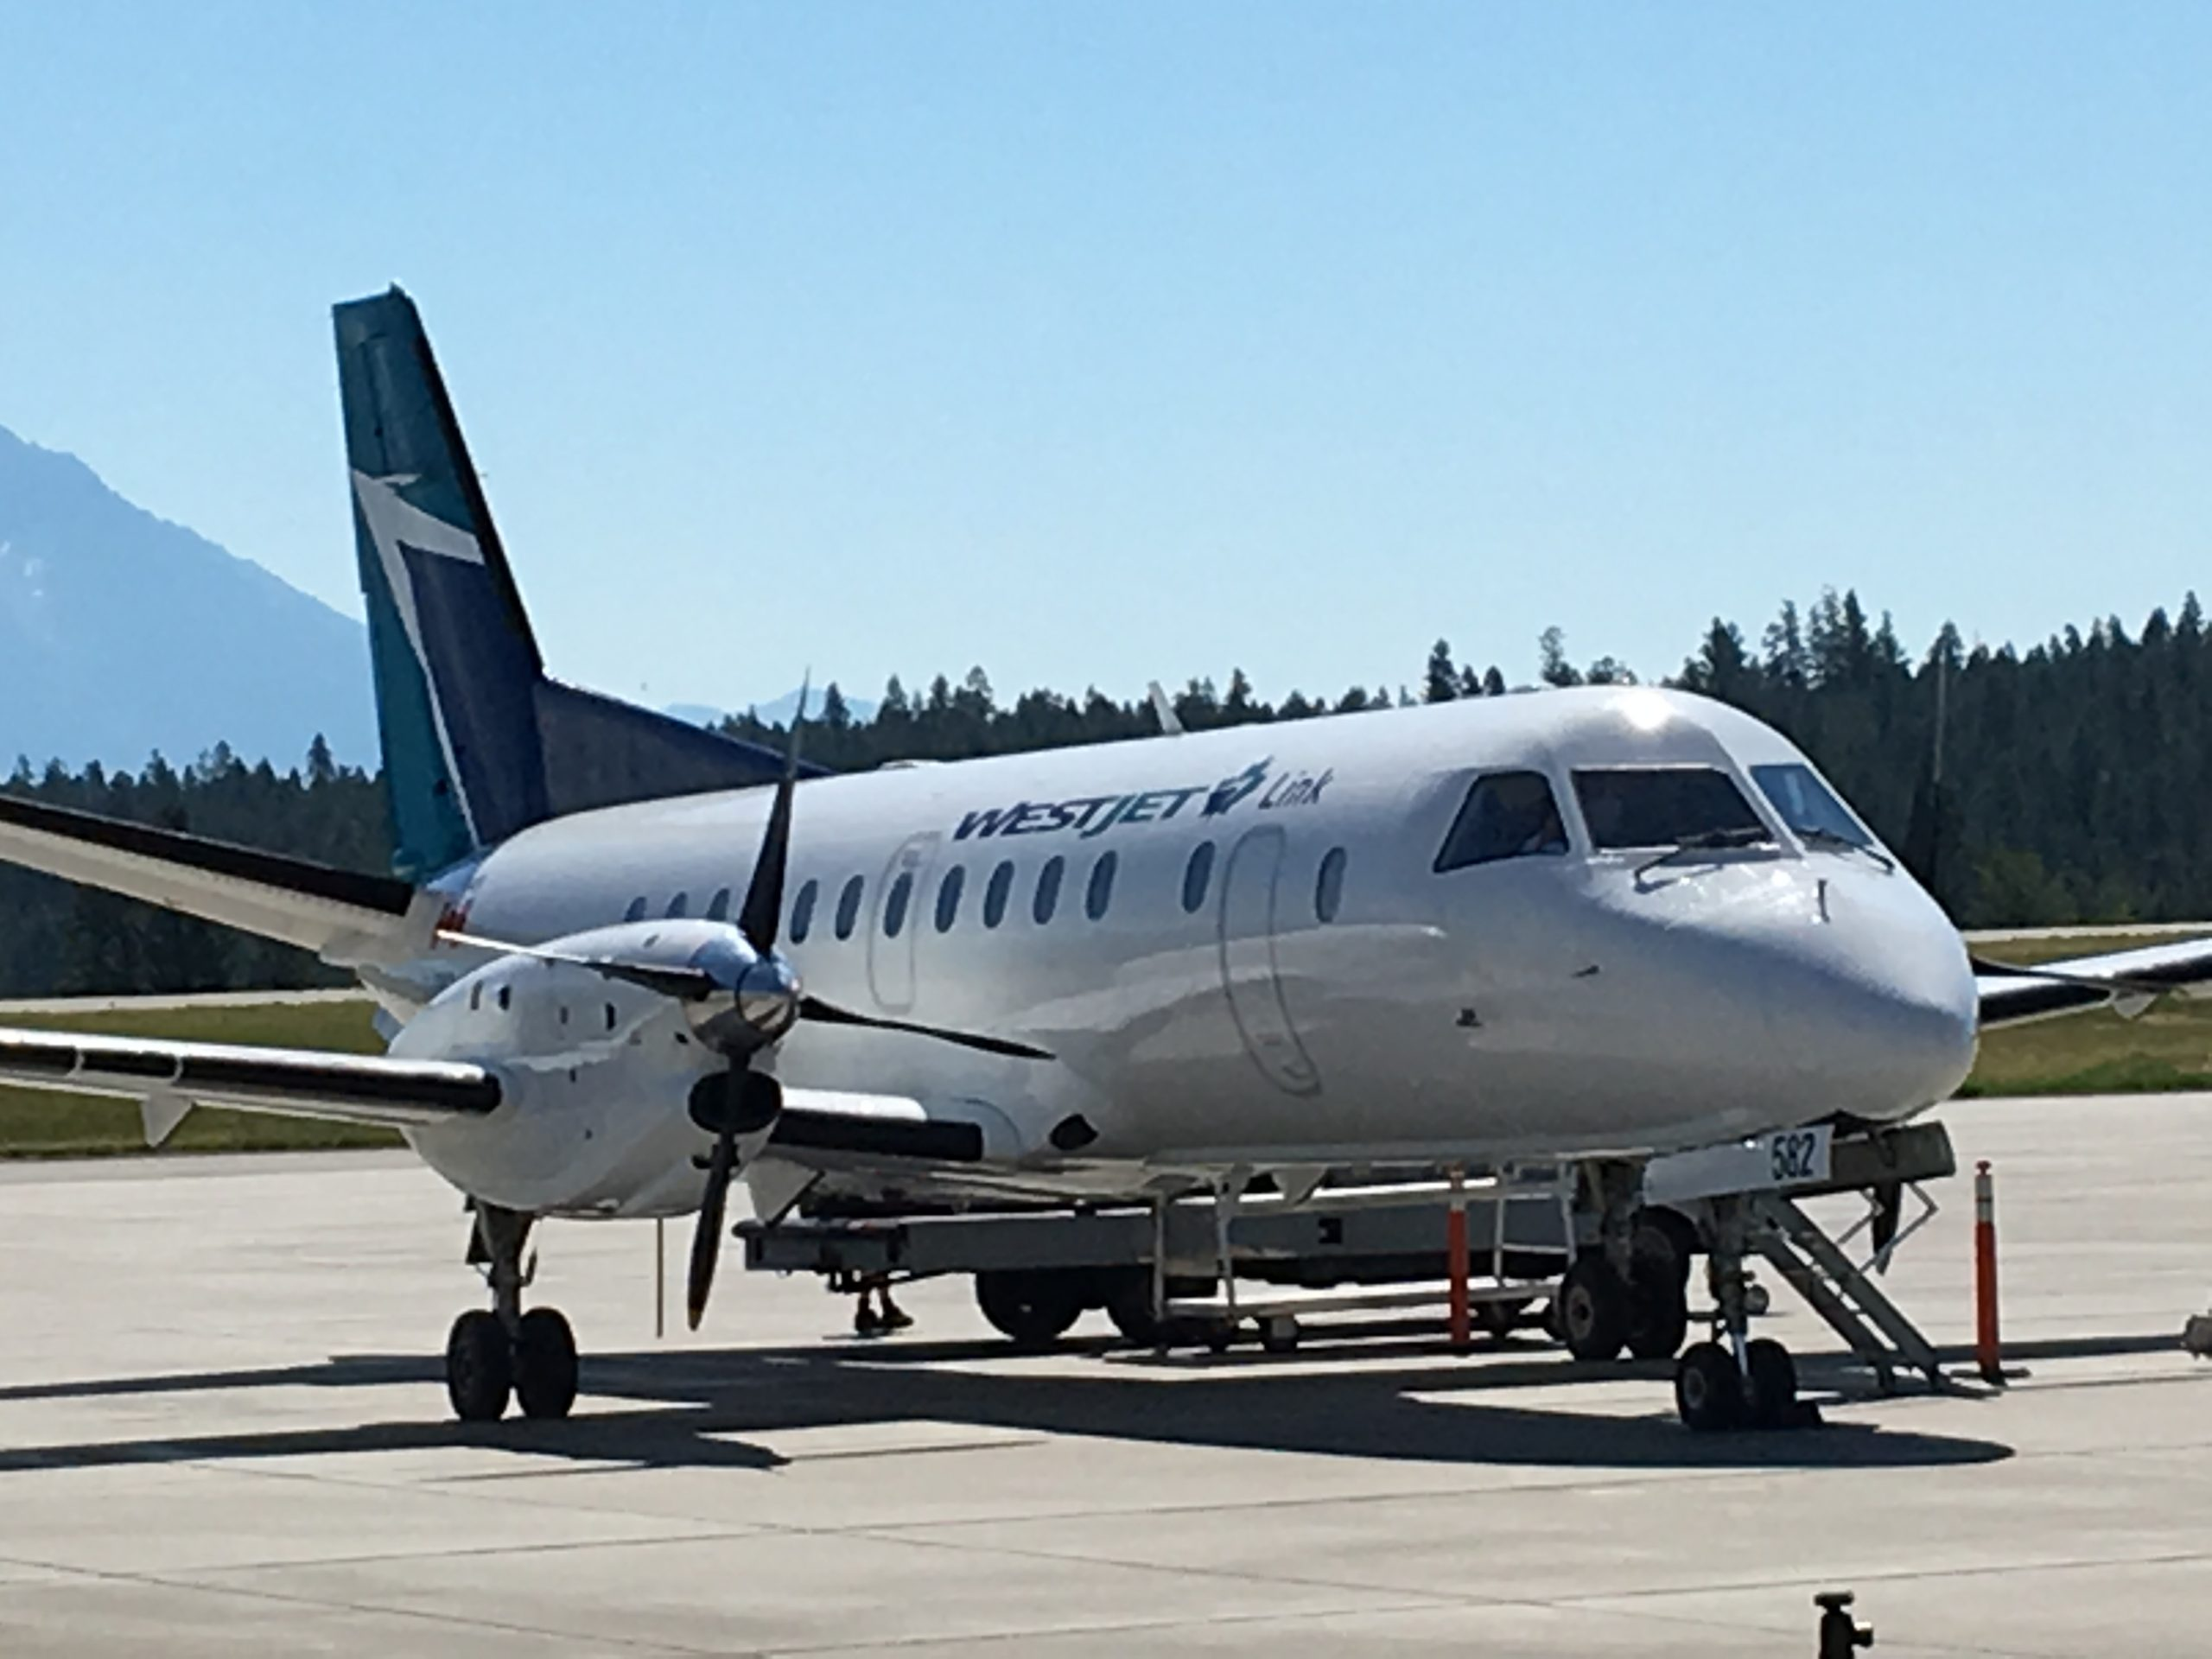 WestJet partnership utilizes smaller aircraft for new Cranbrook to Calgary service